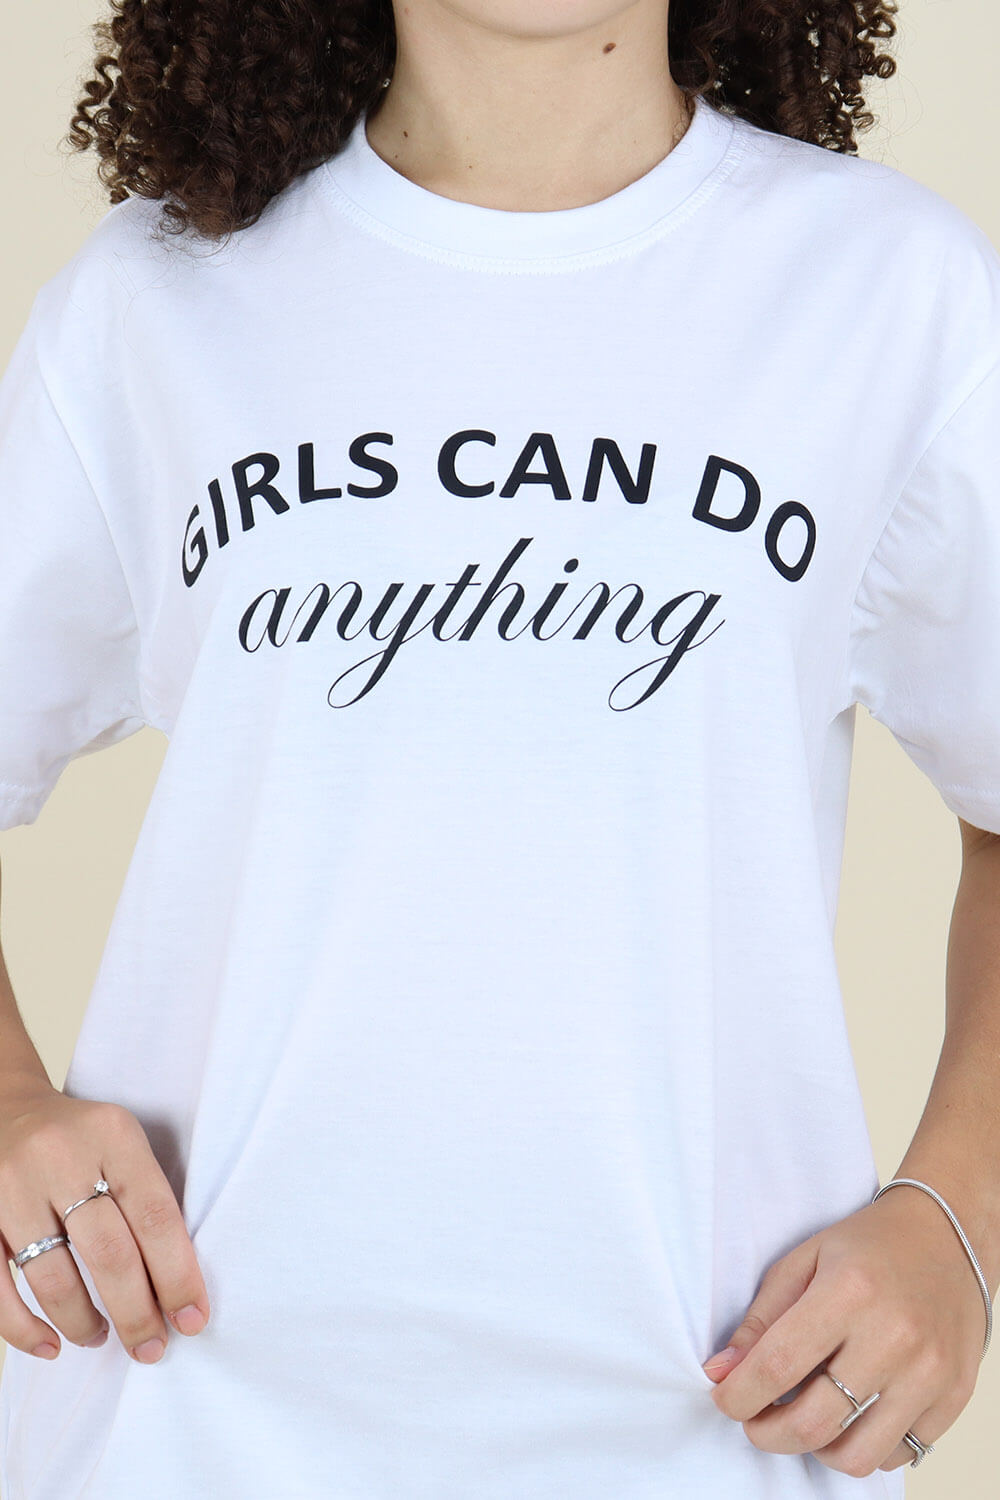 T-Shirt Chiquiteira Girls Can Do Anything Branco MD08